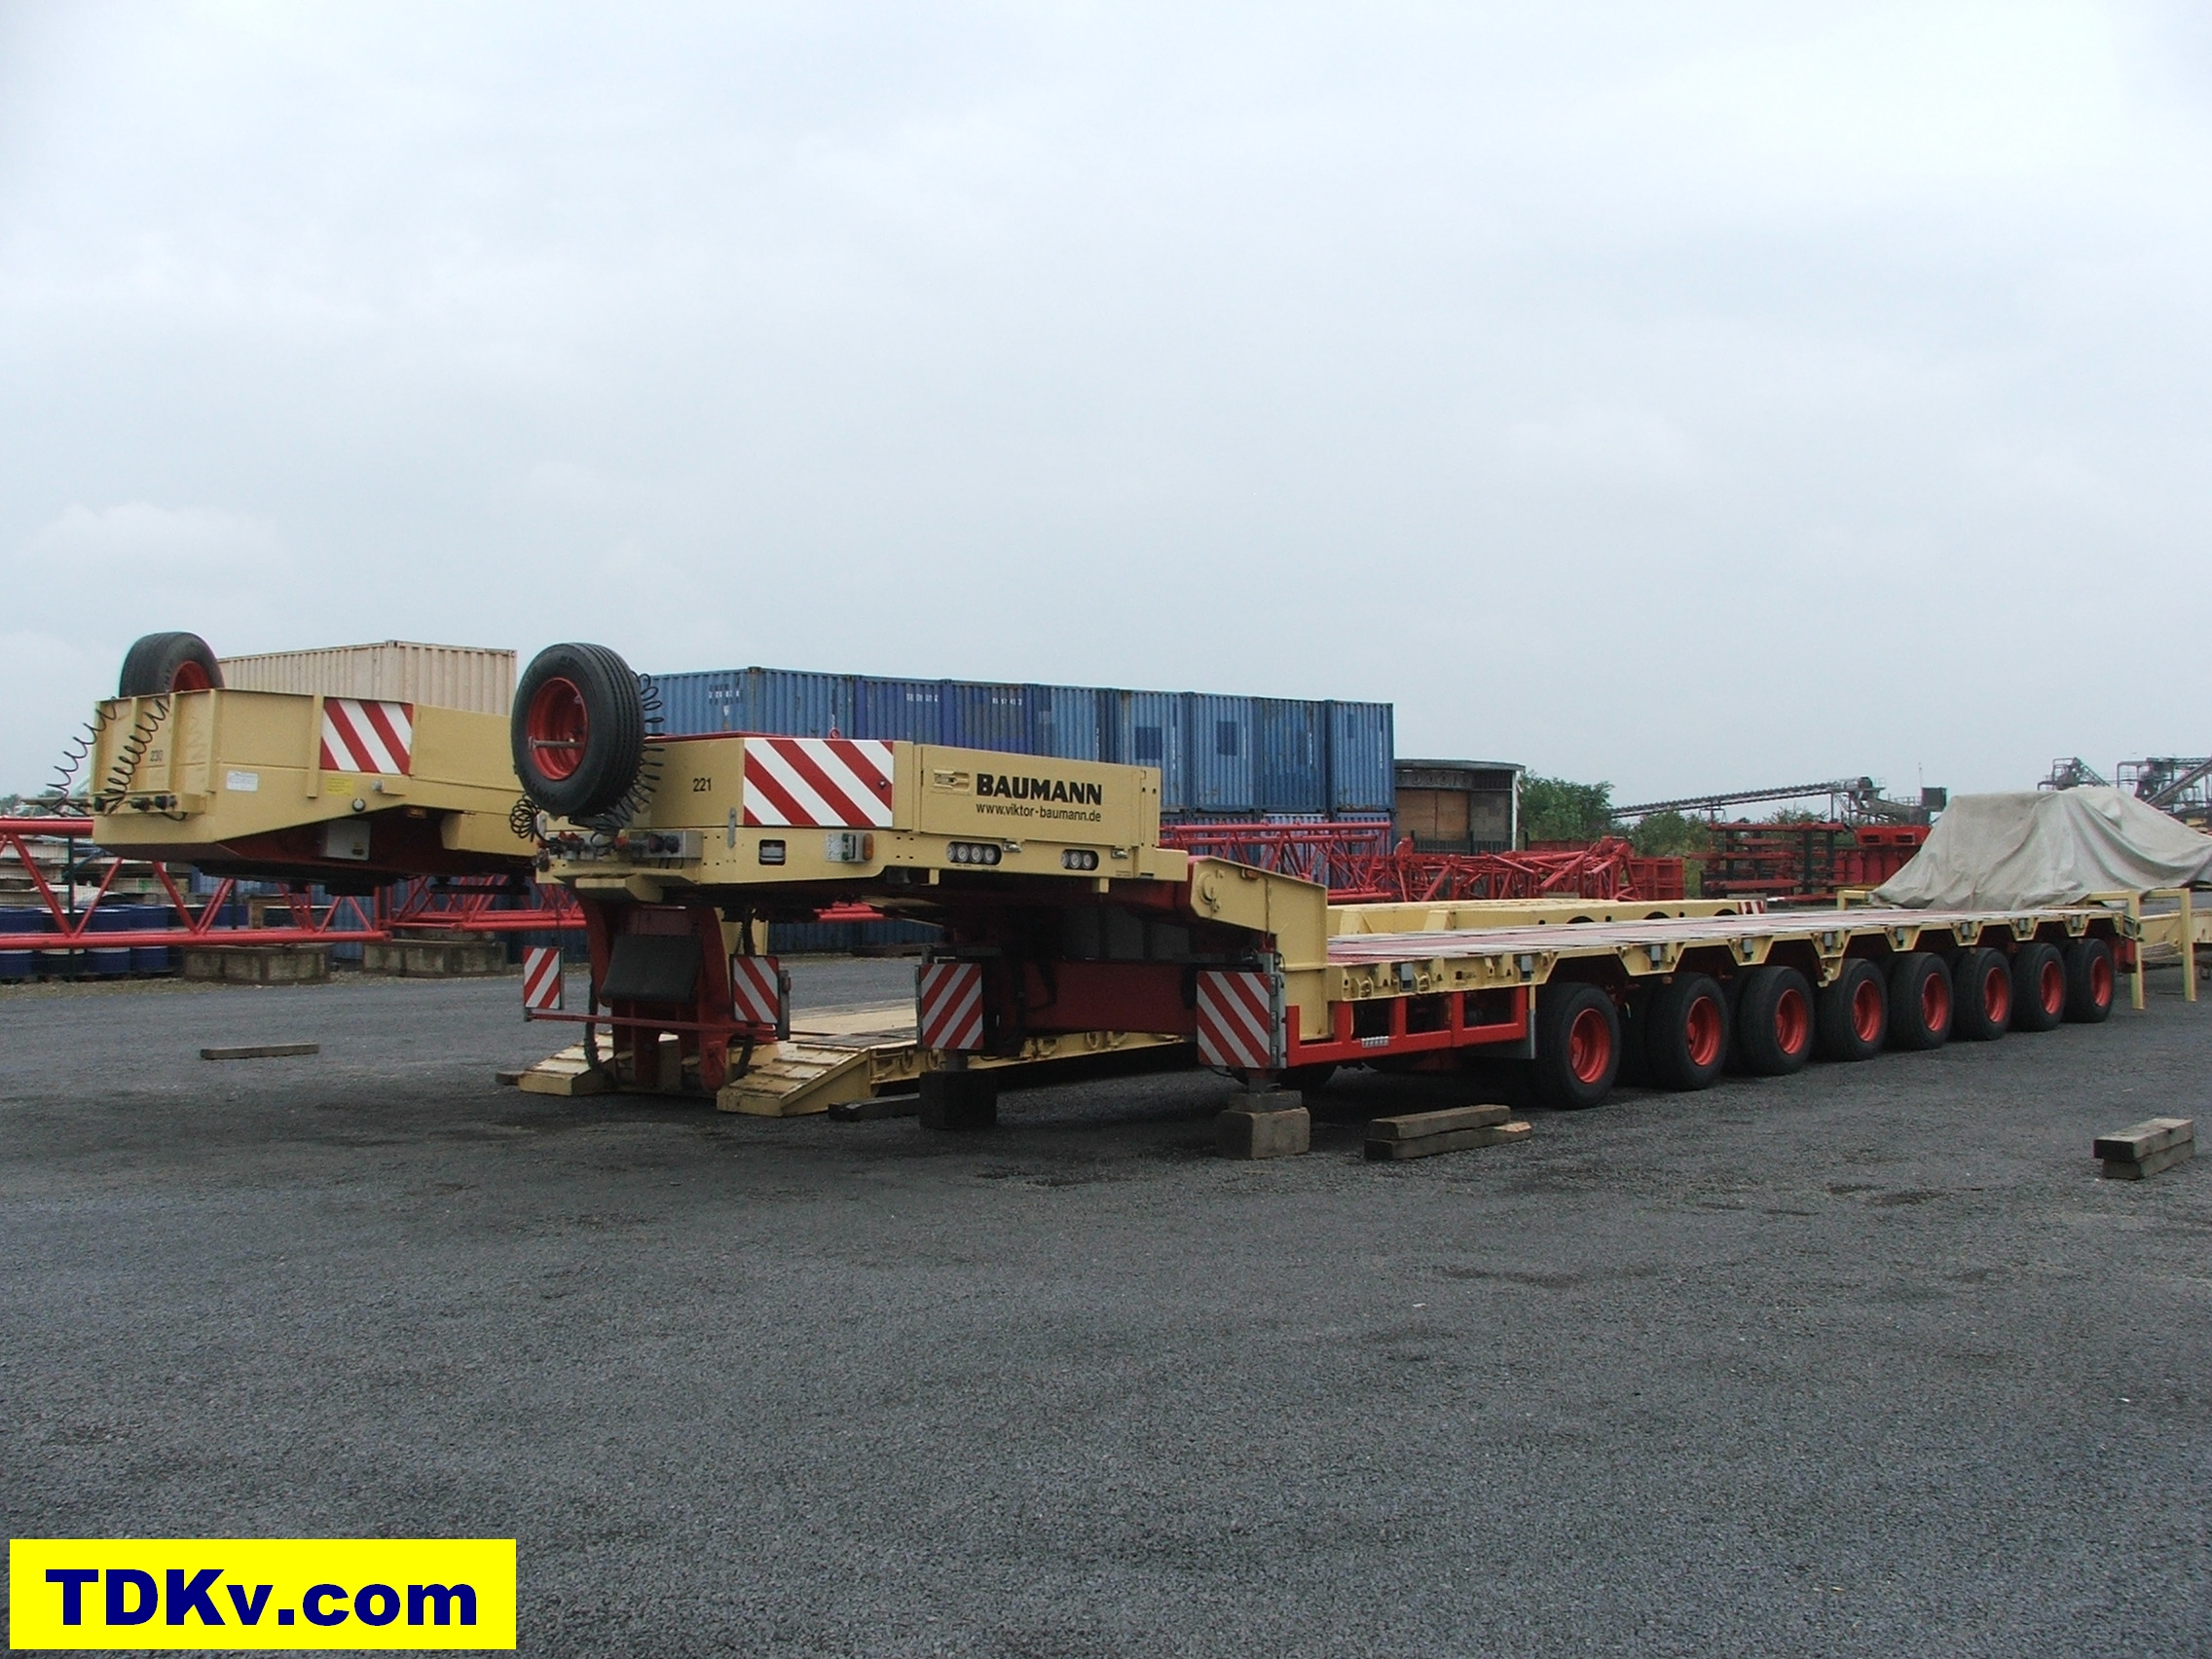 Baumann 8-Axle Trailer